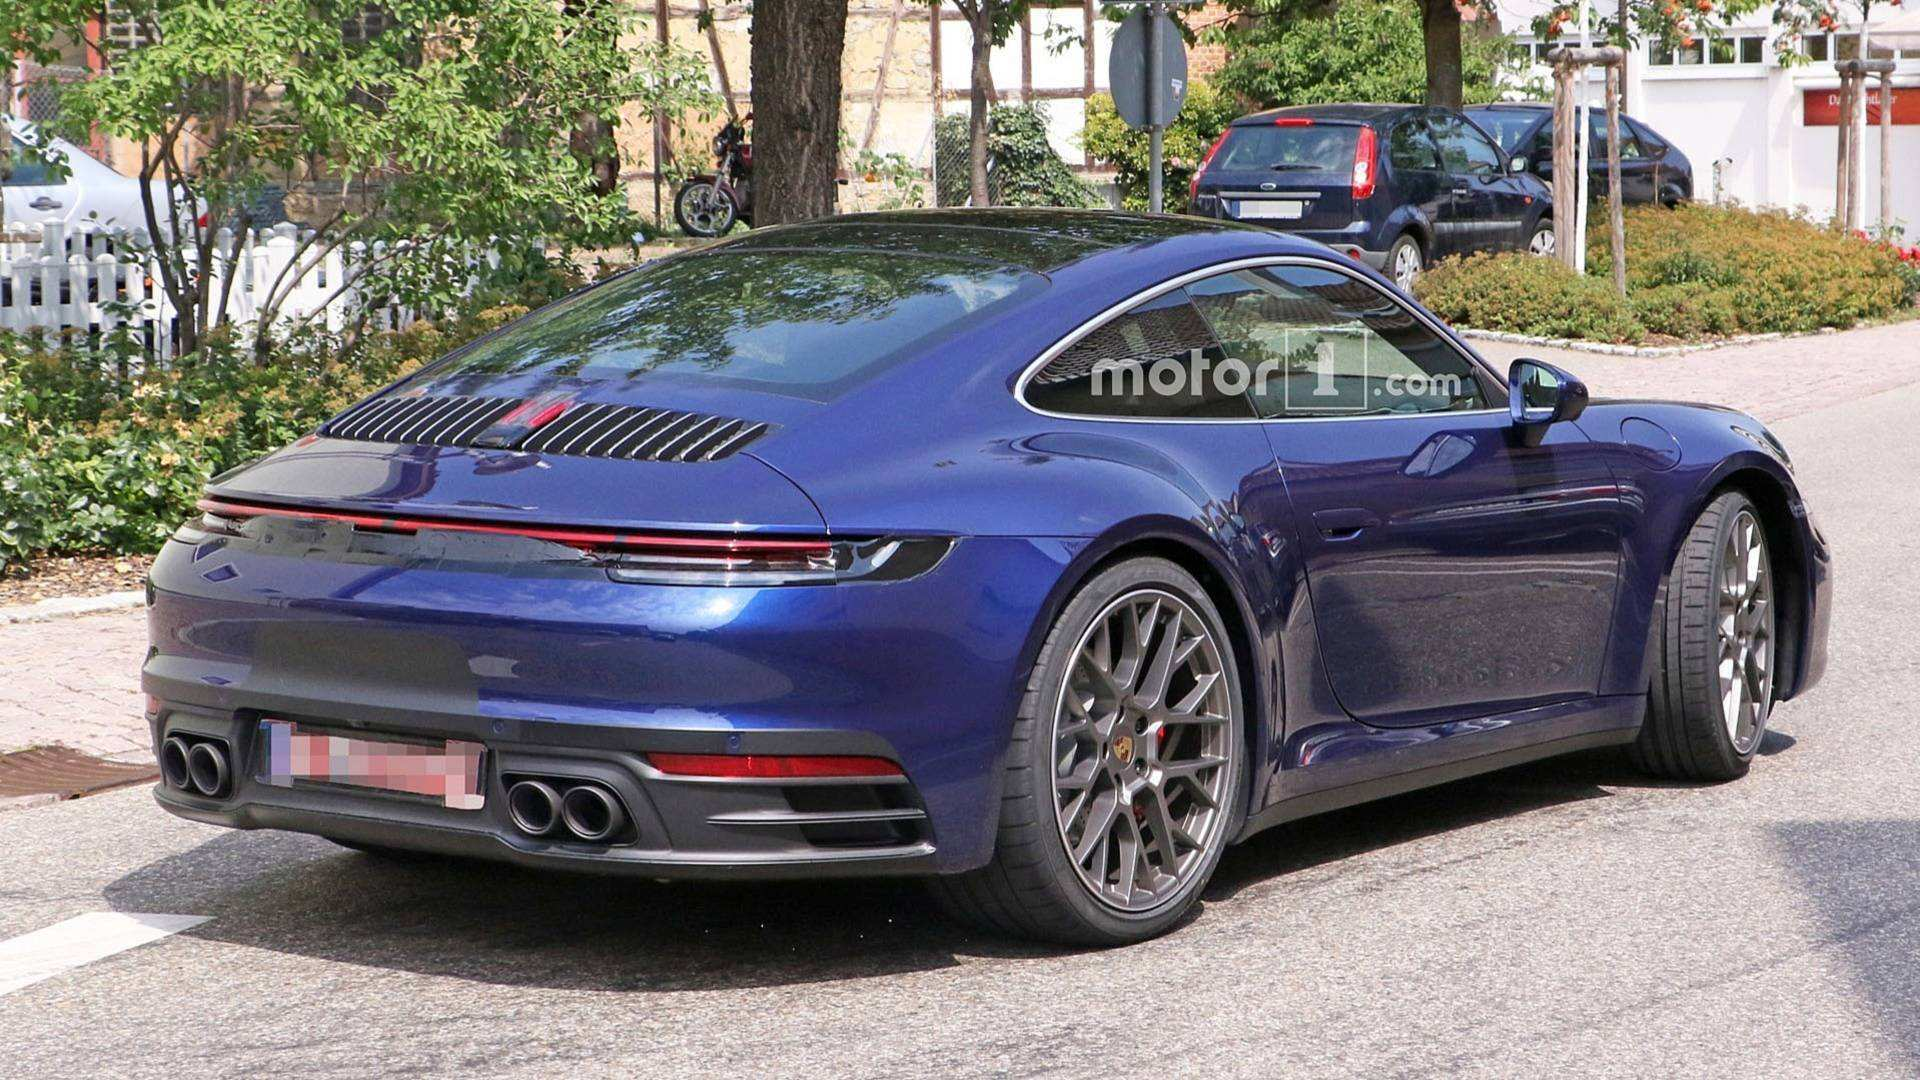 42 All New 2019 Porsche 911 4S Rumors by 2019 Porsche 911 4S